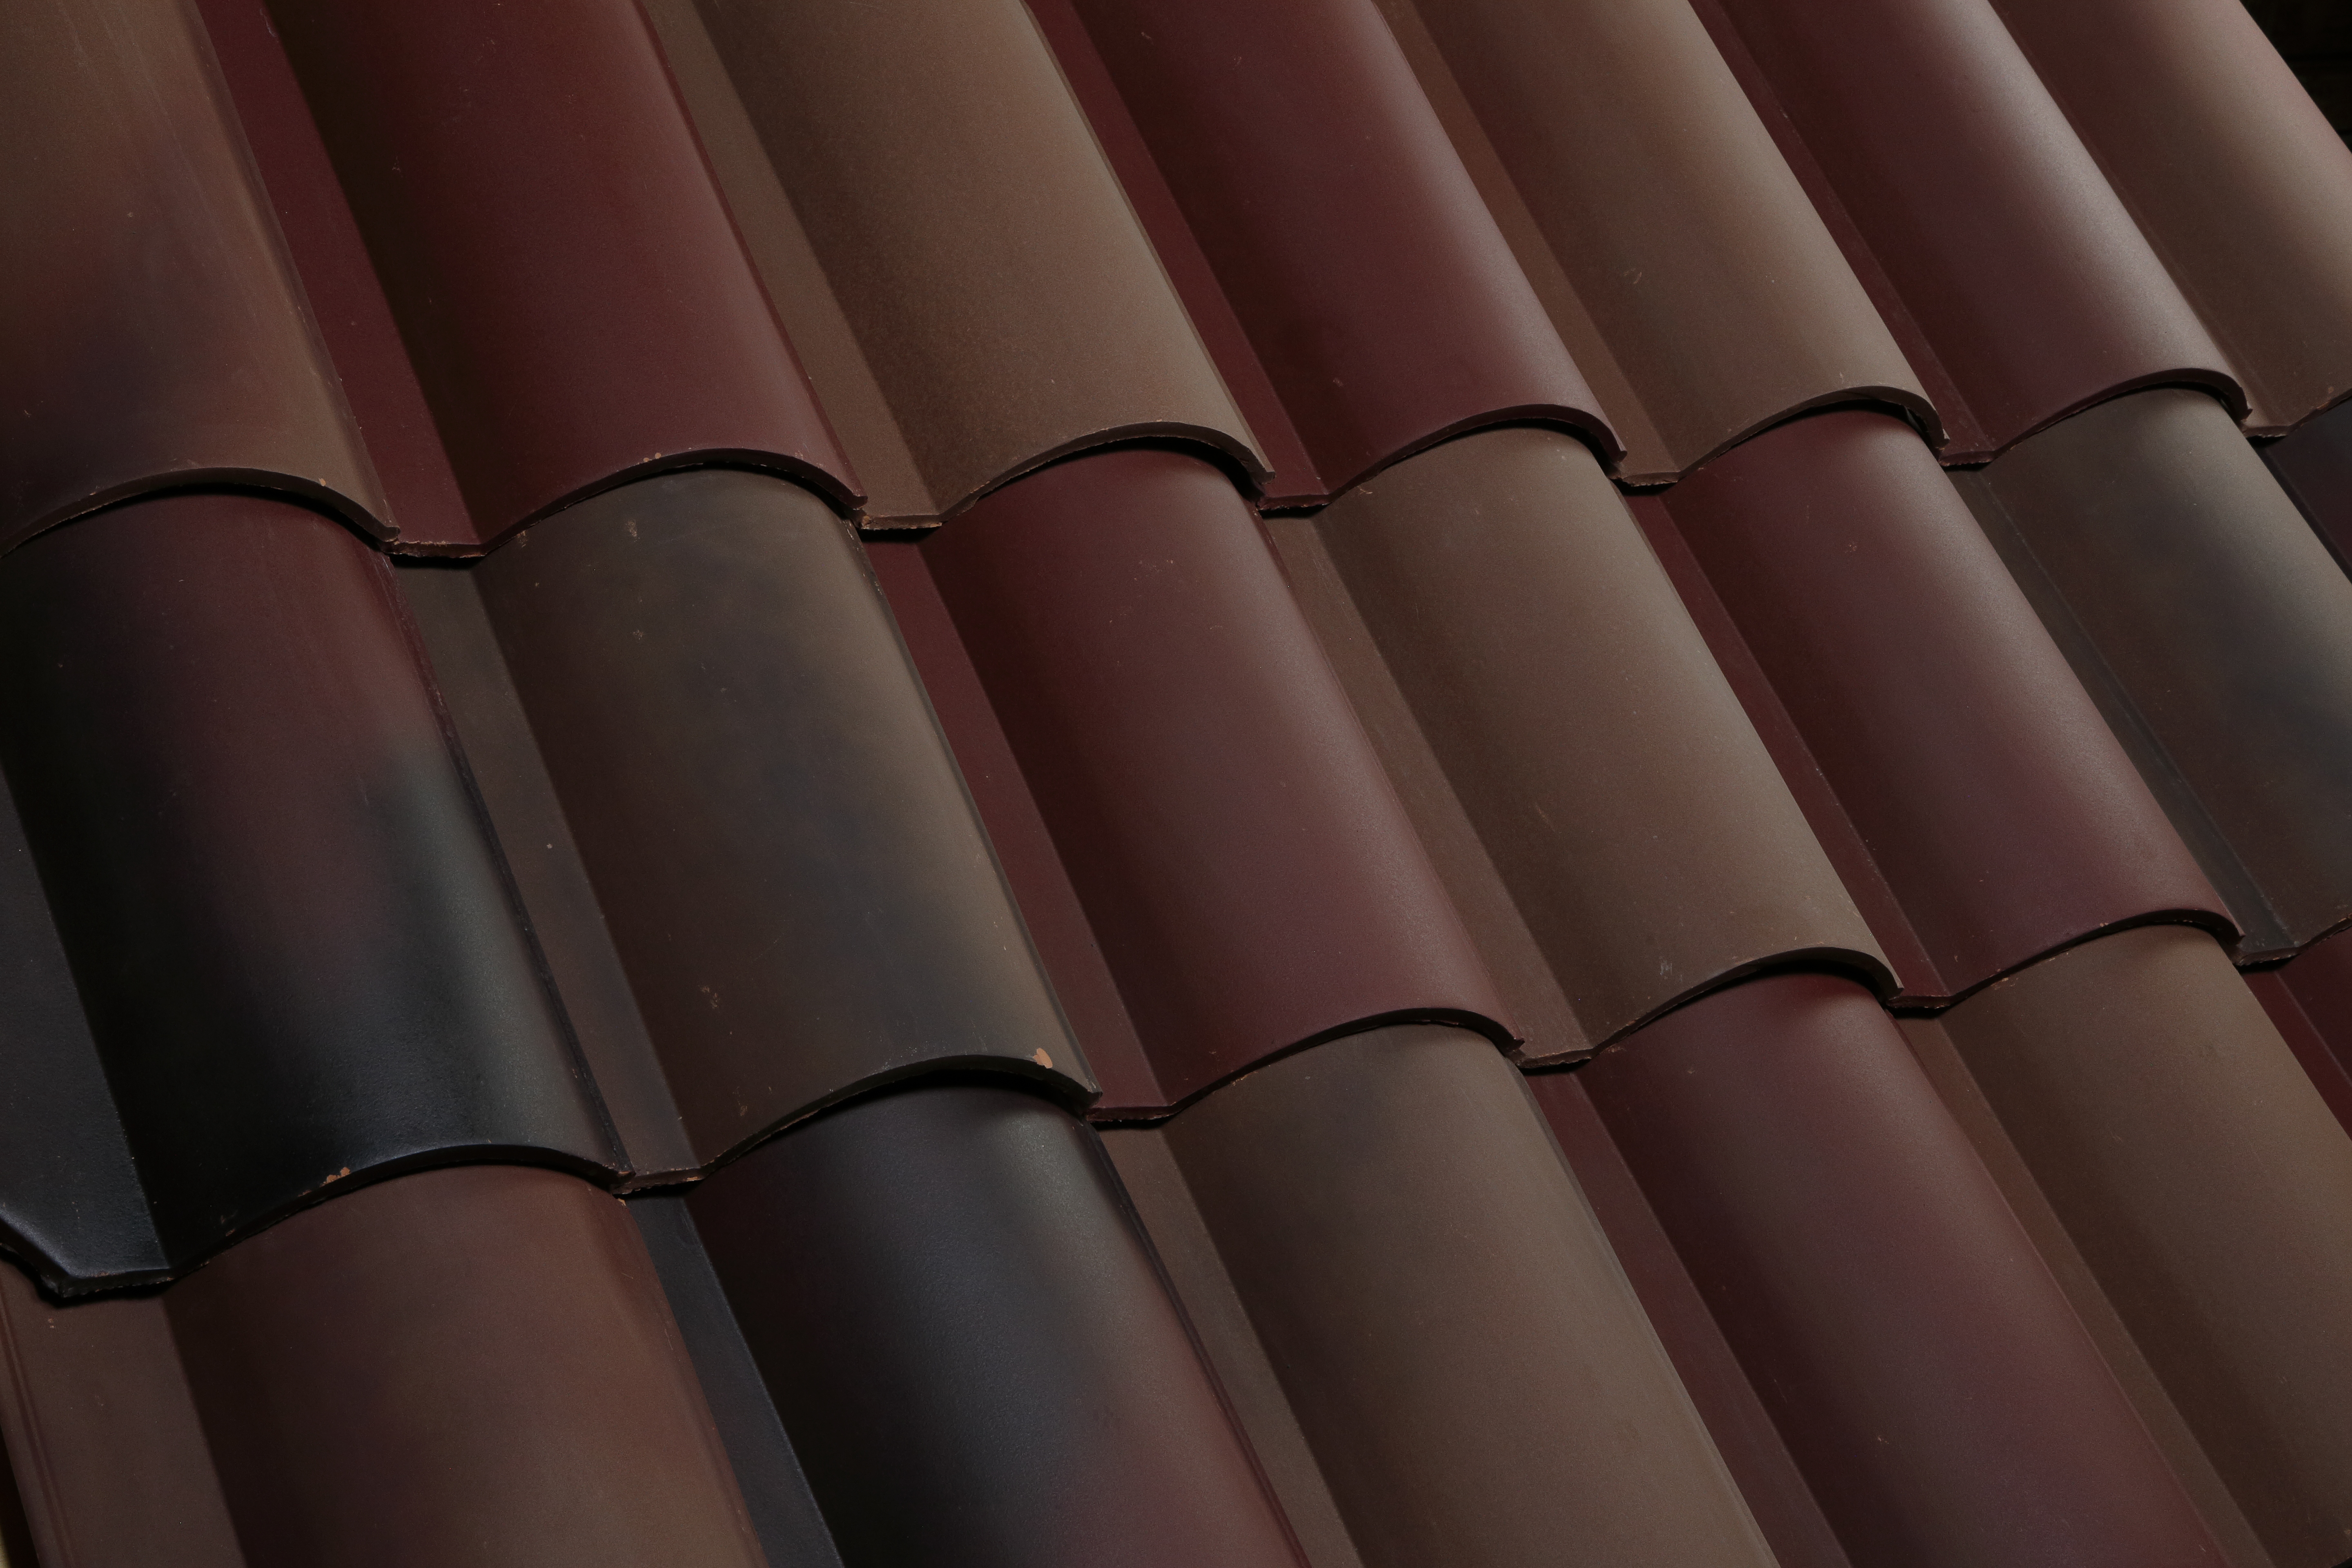 Clay roof tile for sale at Claymex.